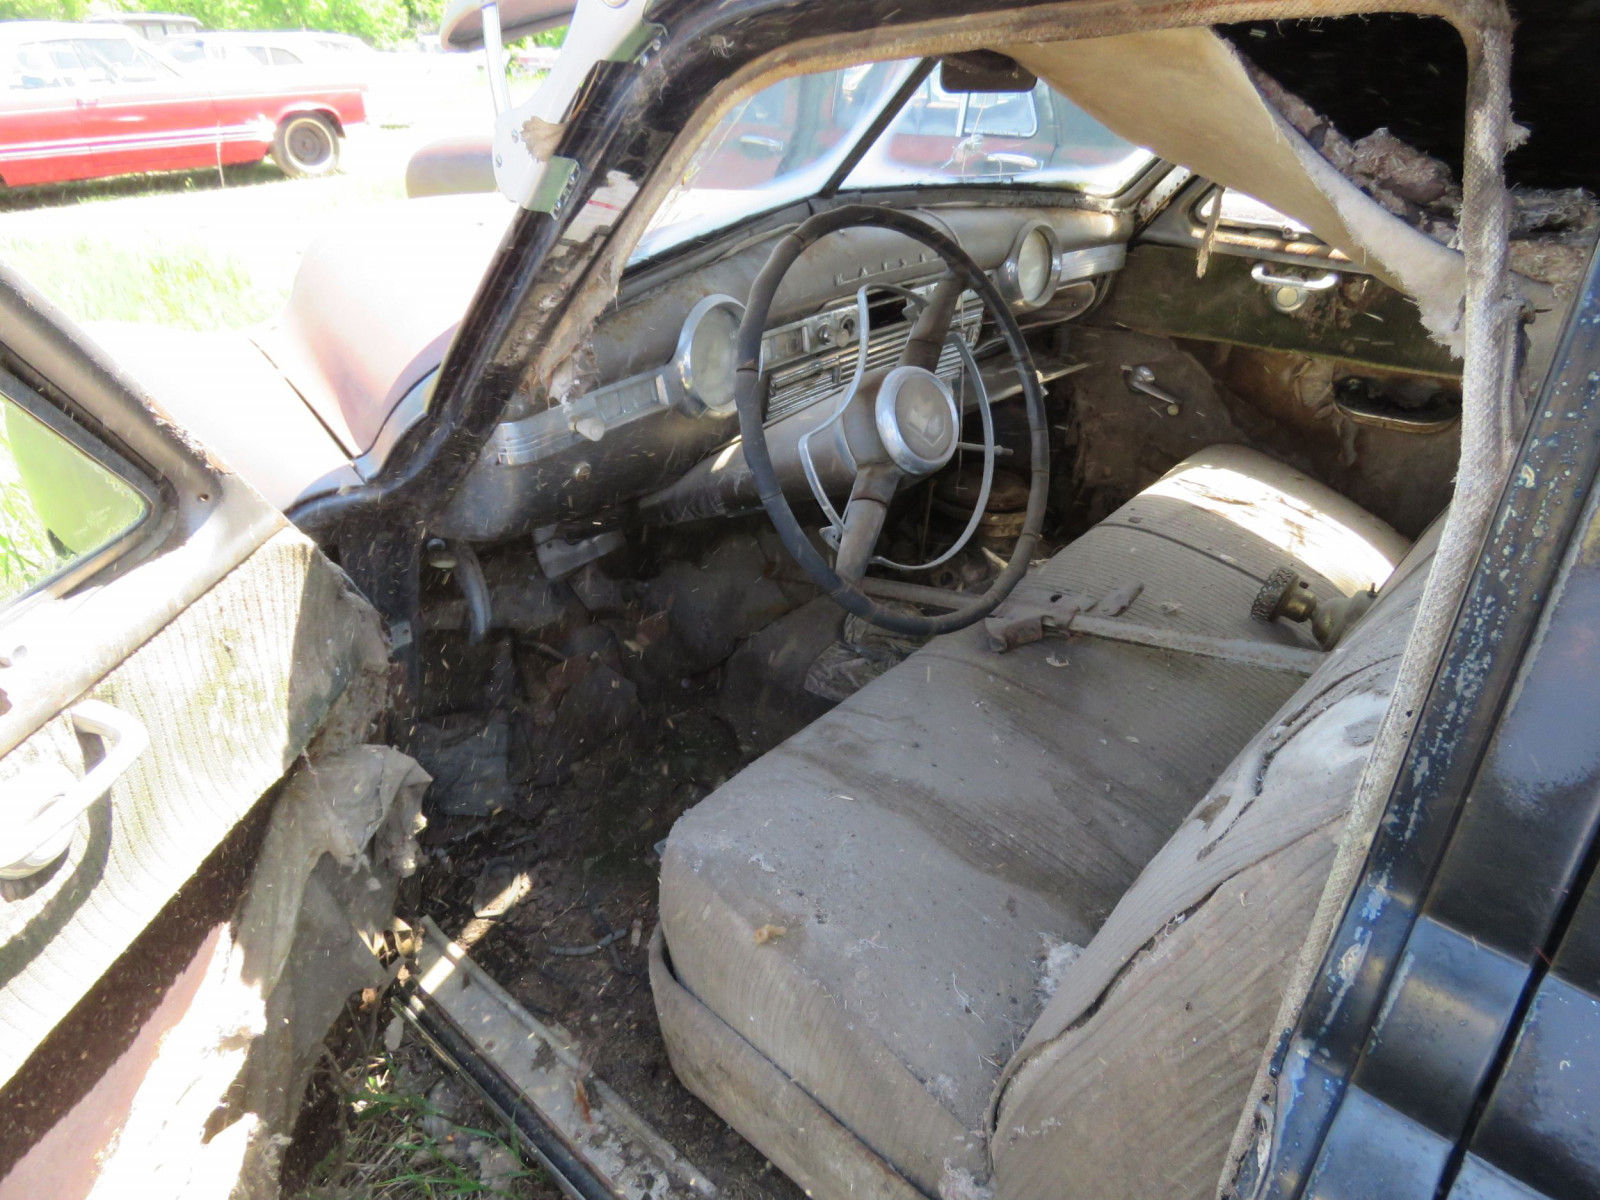 1949 Kaiser 4dr Sedan for project or parts - Image 6